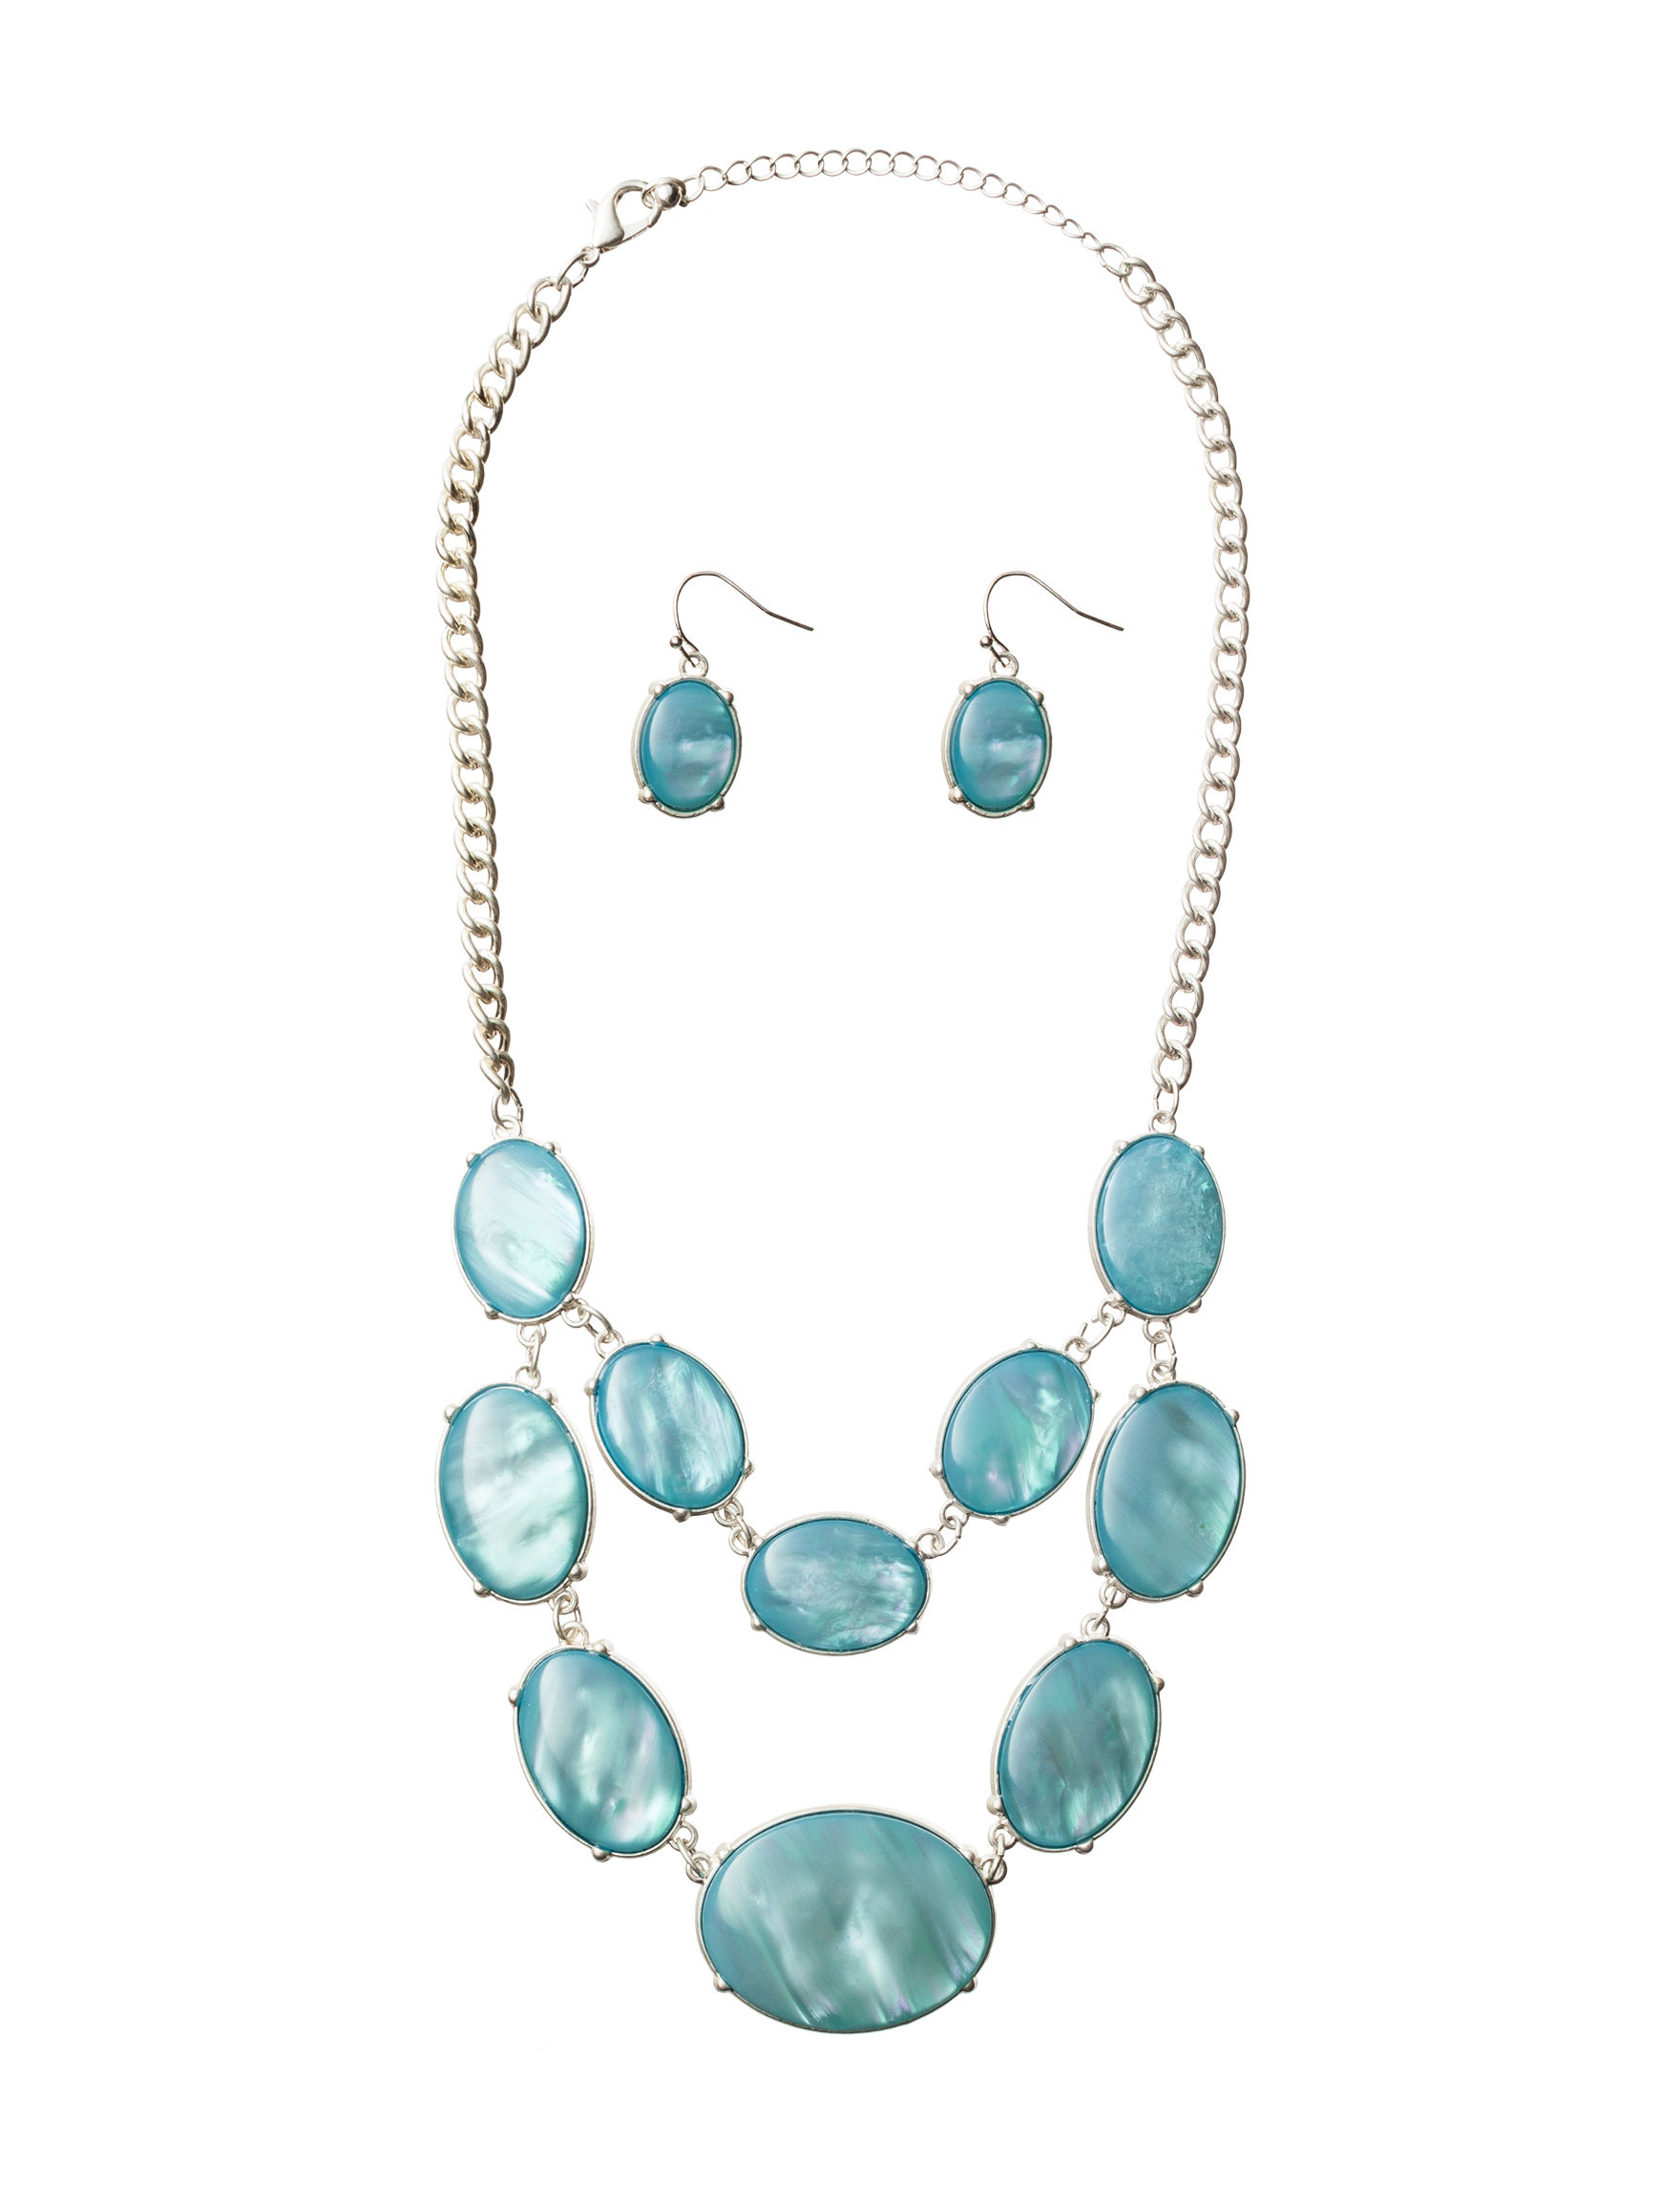 Hannah Blue Drops Earrings Necklaces & Pendants Fashion Jewelry